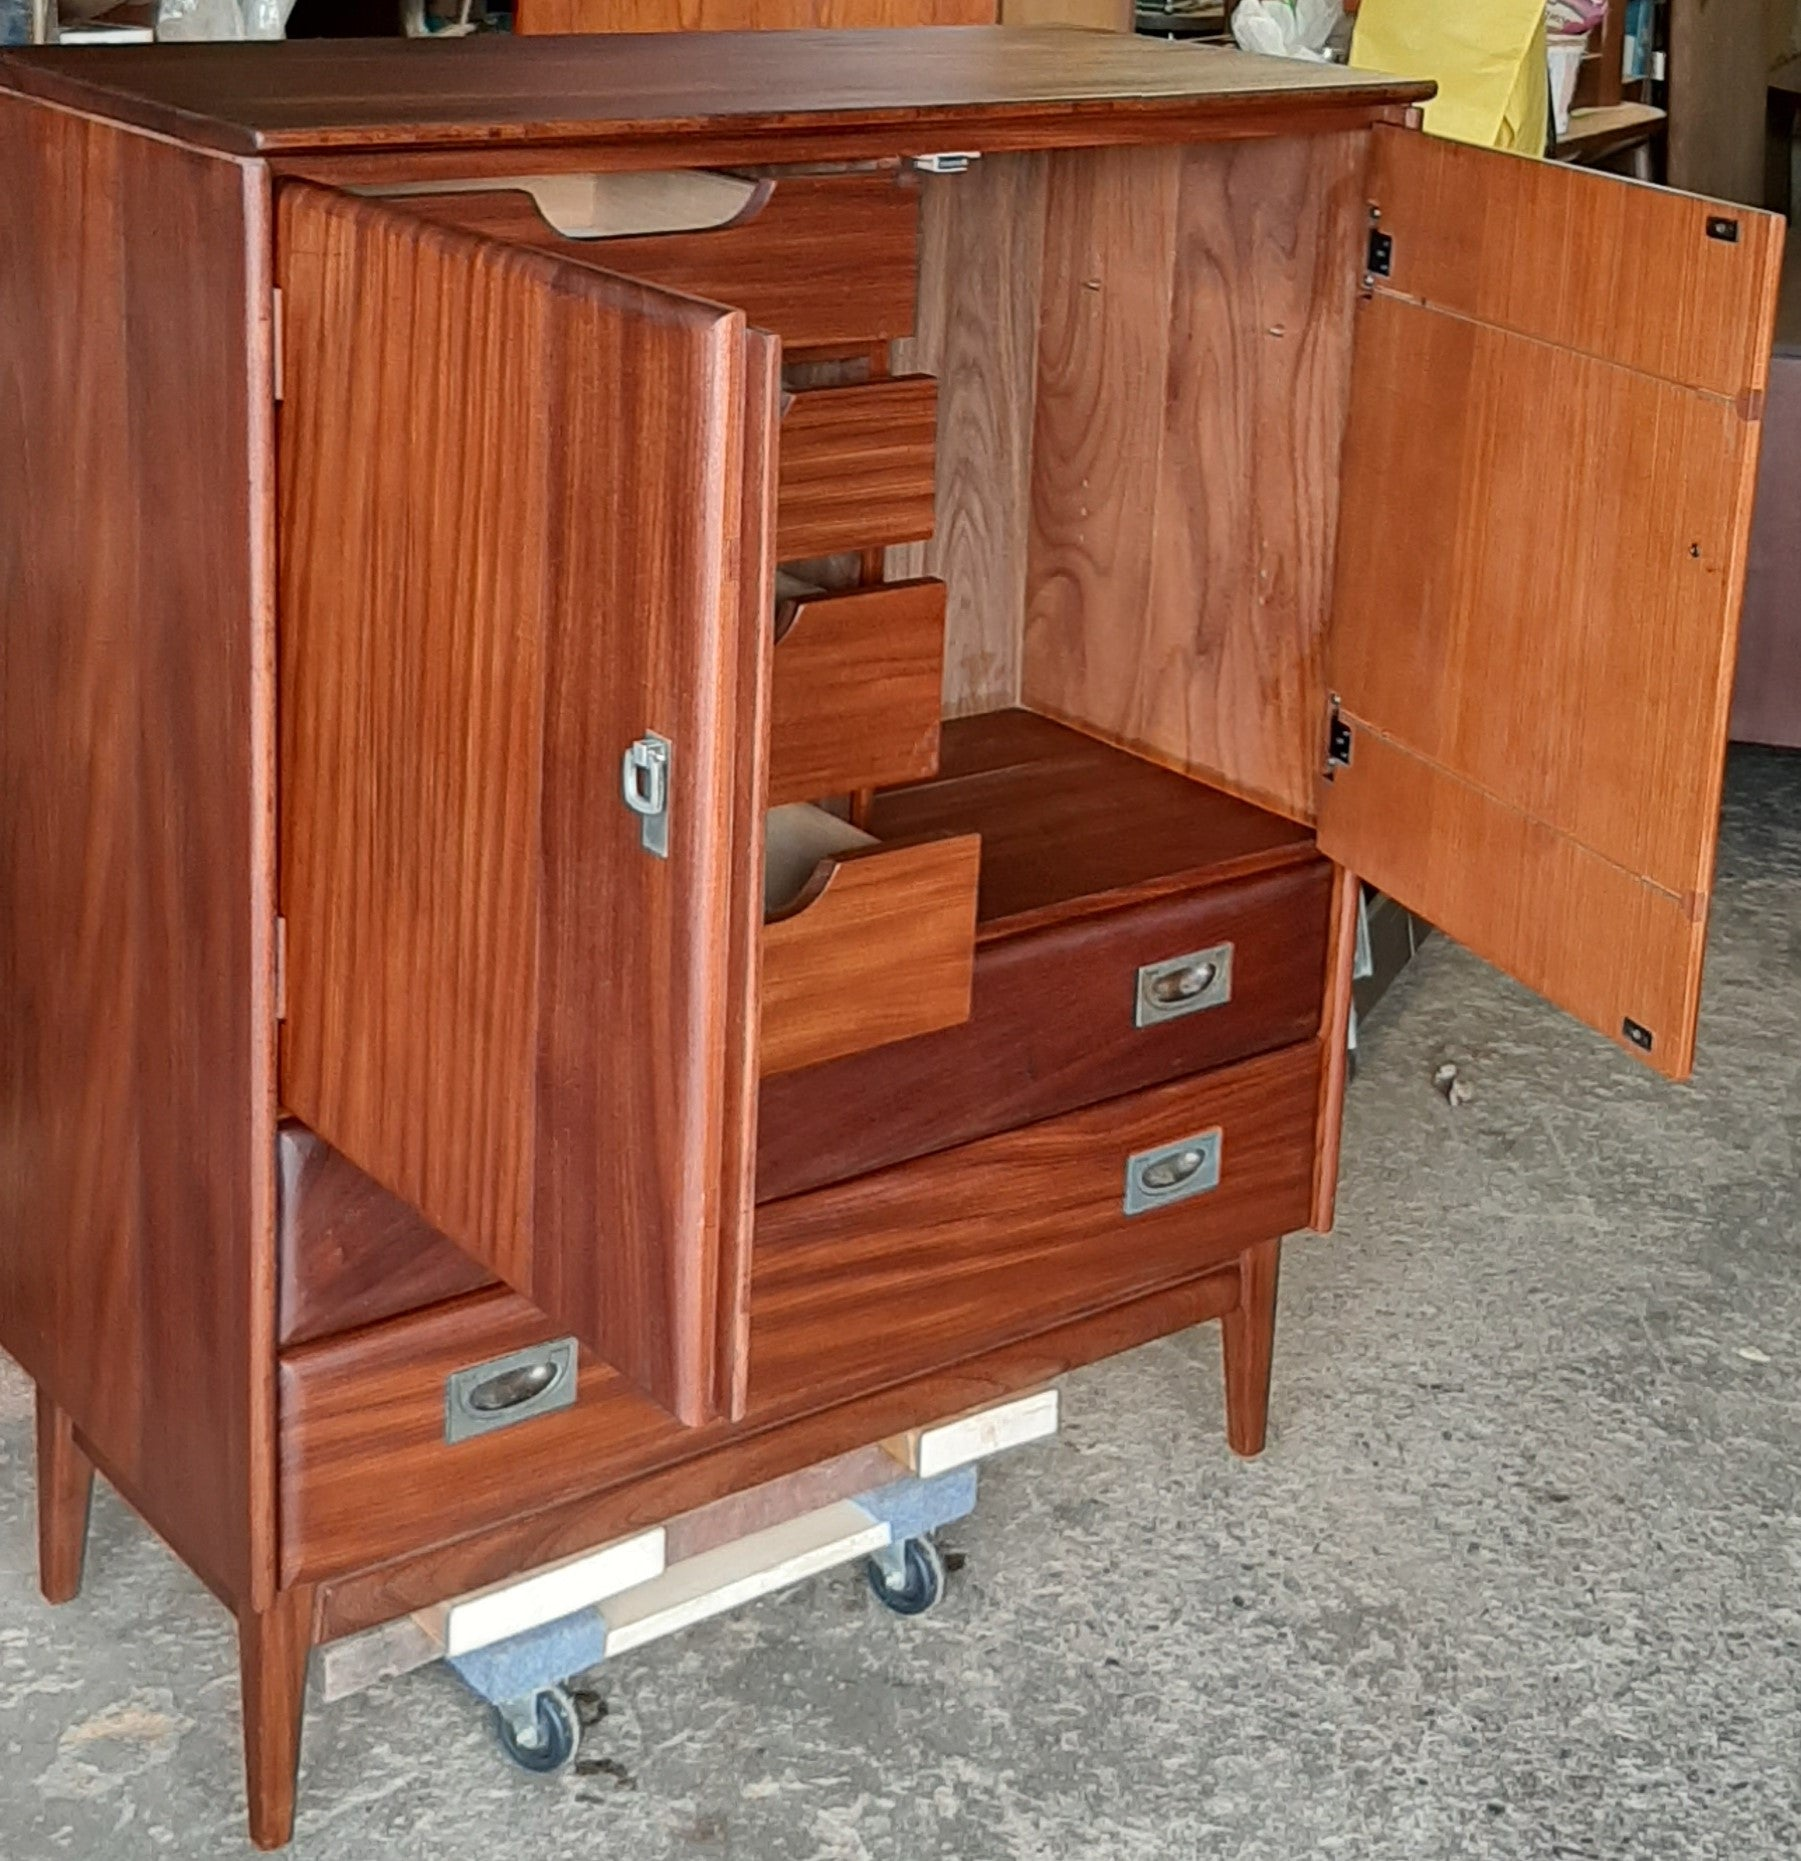 Refinished Mcm Solid Teak Compact Wardrobe And 9 Drawers Dresser By Im Mid Century Modern Toronto